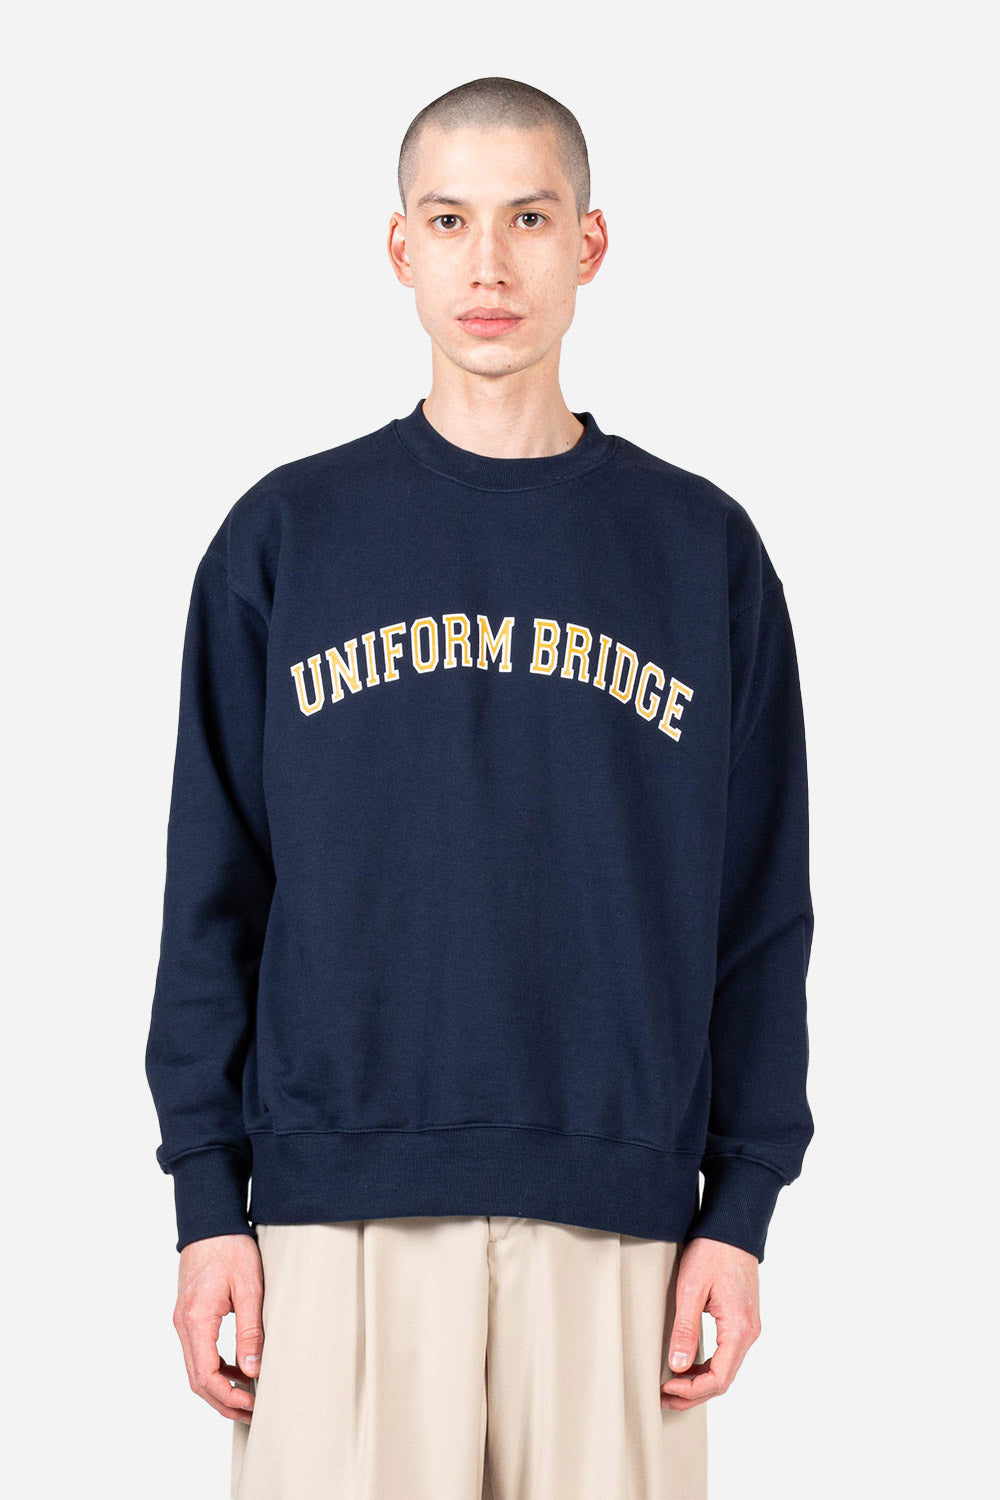 uniform-bridge-arch-logo-sweatshirt-navy